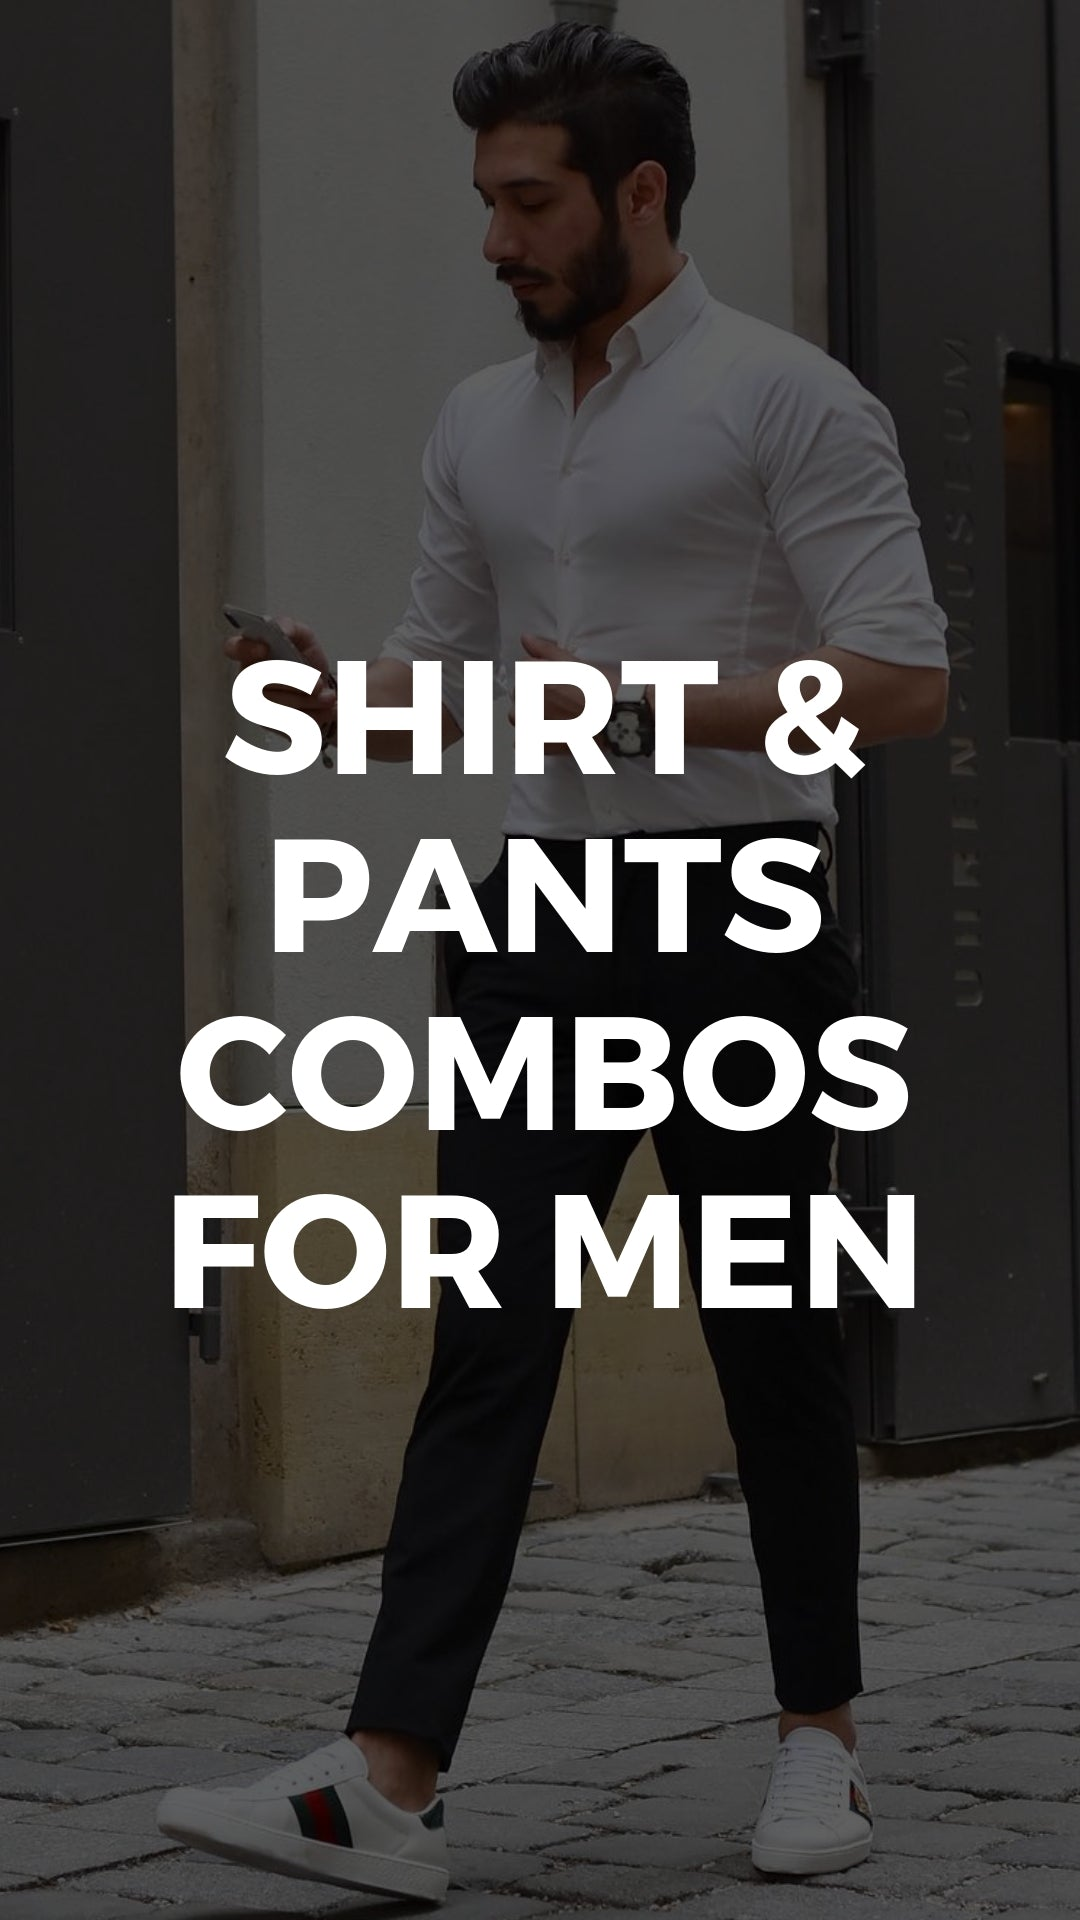 5 Best Shirt And Pant Combinations For Men #shirts #pants #mens #fashion